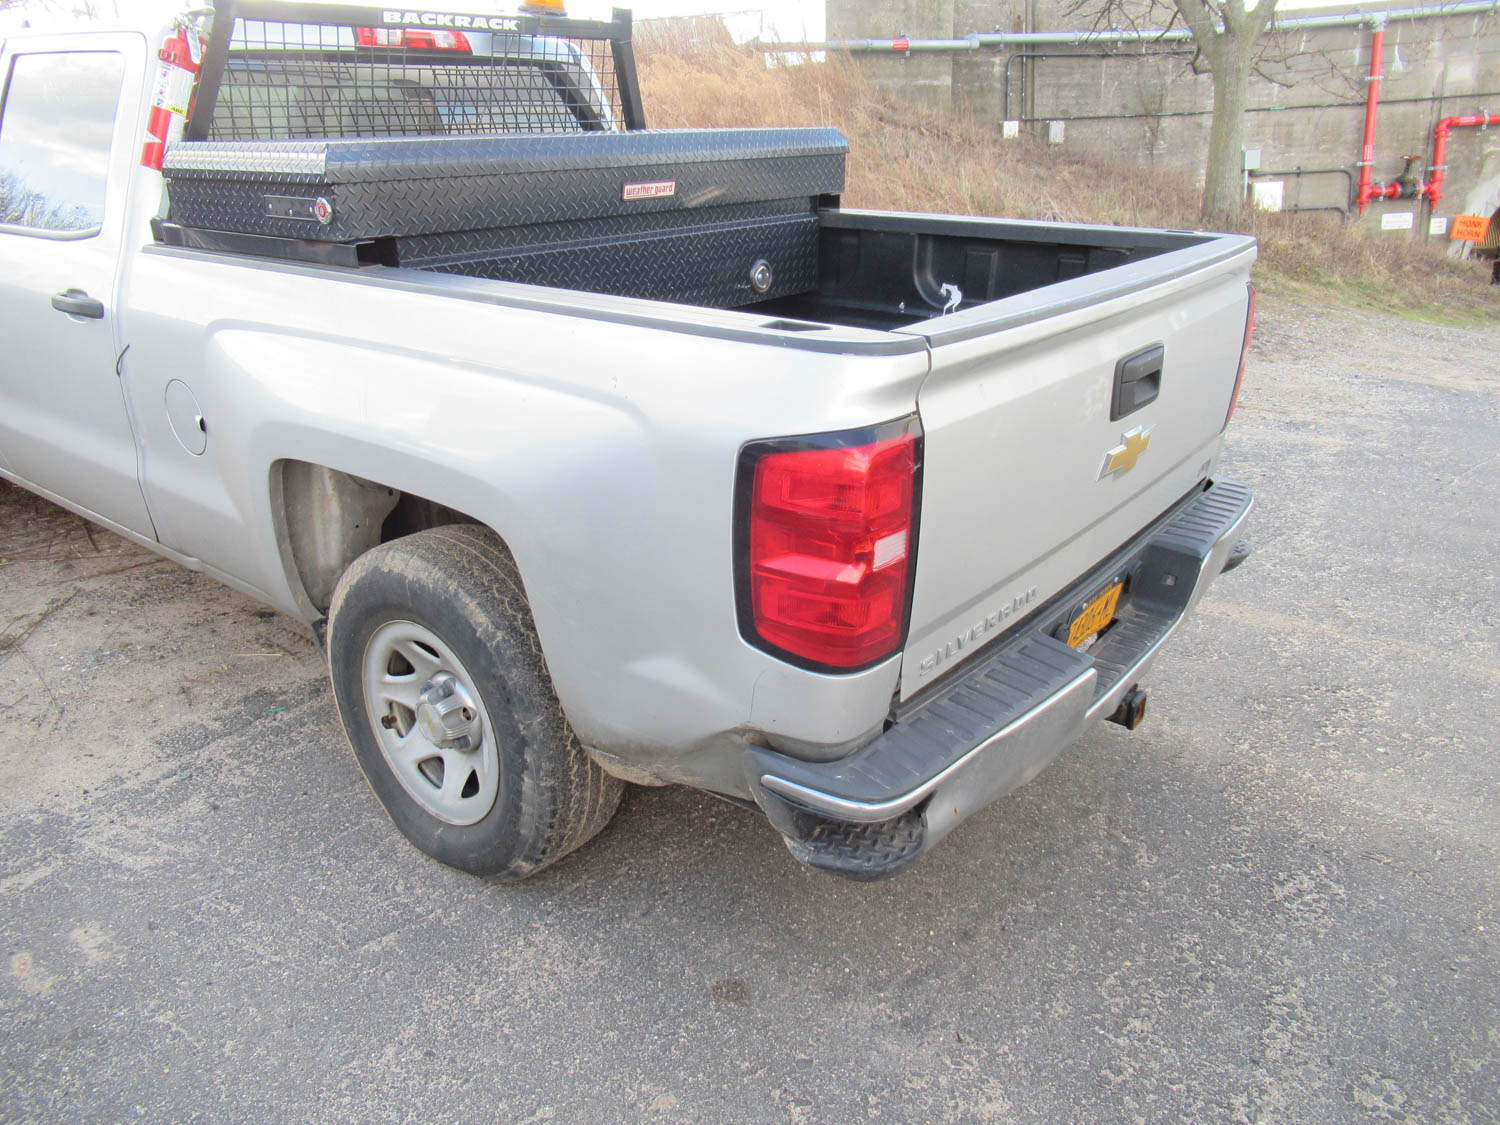 Lot 37 - 2015 CHEVY SILVERADO PICKUP TRUCK, 4-WHEEL DRIVE, 4-DOOR, APPROXIMATELY 71,840 MILES, CLOTH SEATS,